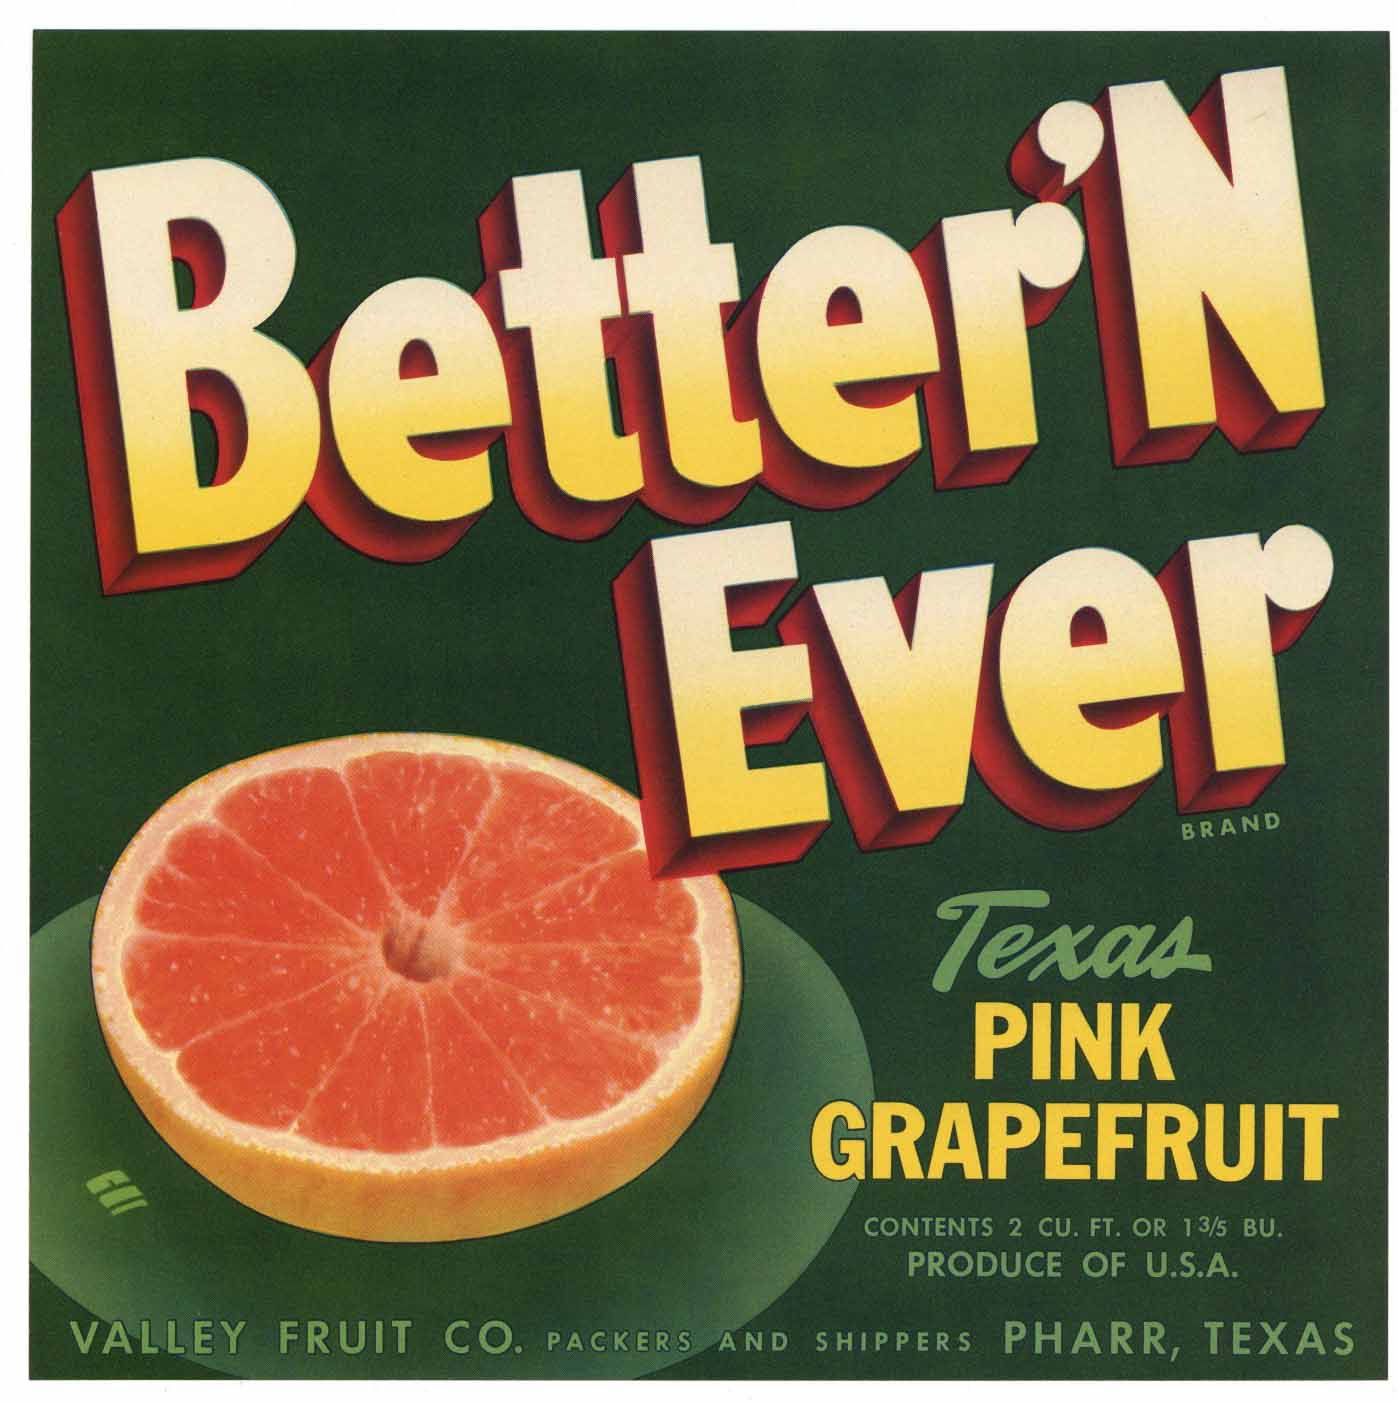 BETTER'N EVER Brand Vintage Texas Grapefruit Crate Label, g